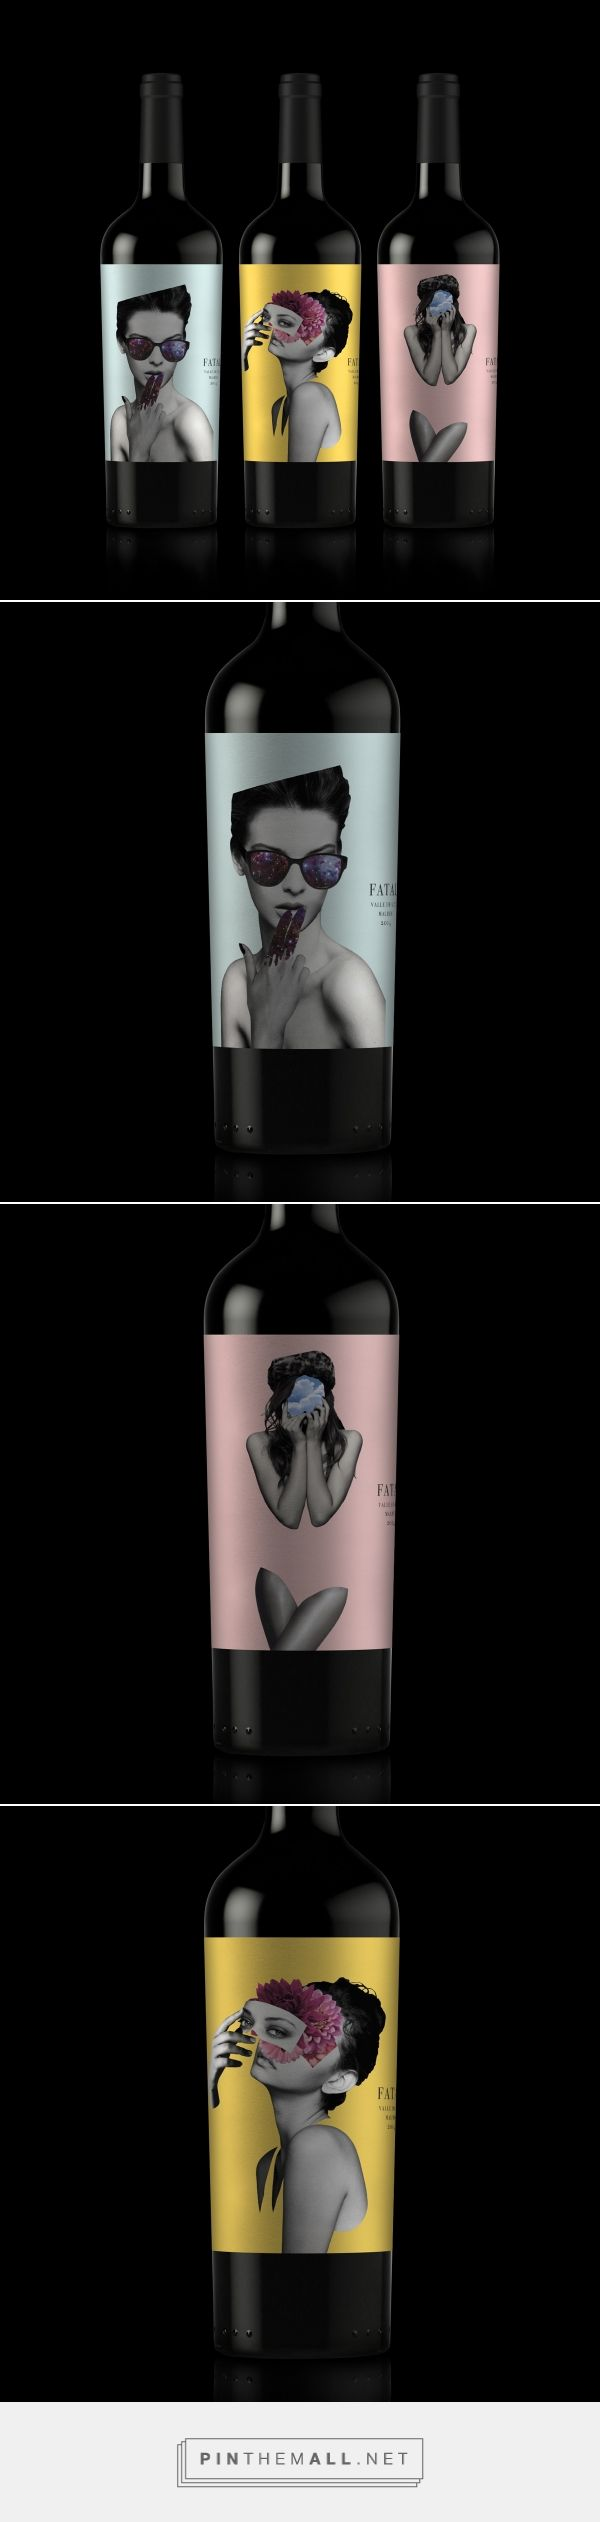 Fatal Wine - Packaging of the World - Creative Package Design Gallery - http://www.packagingoftheworld.com/2017/09/fatal-wine.html